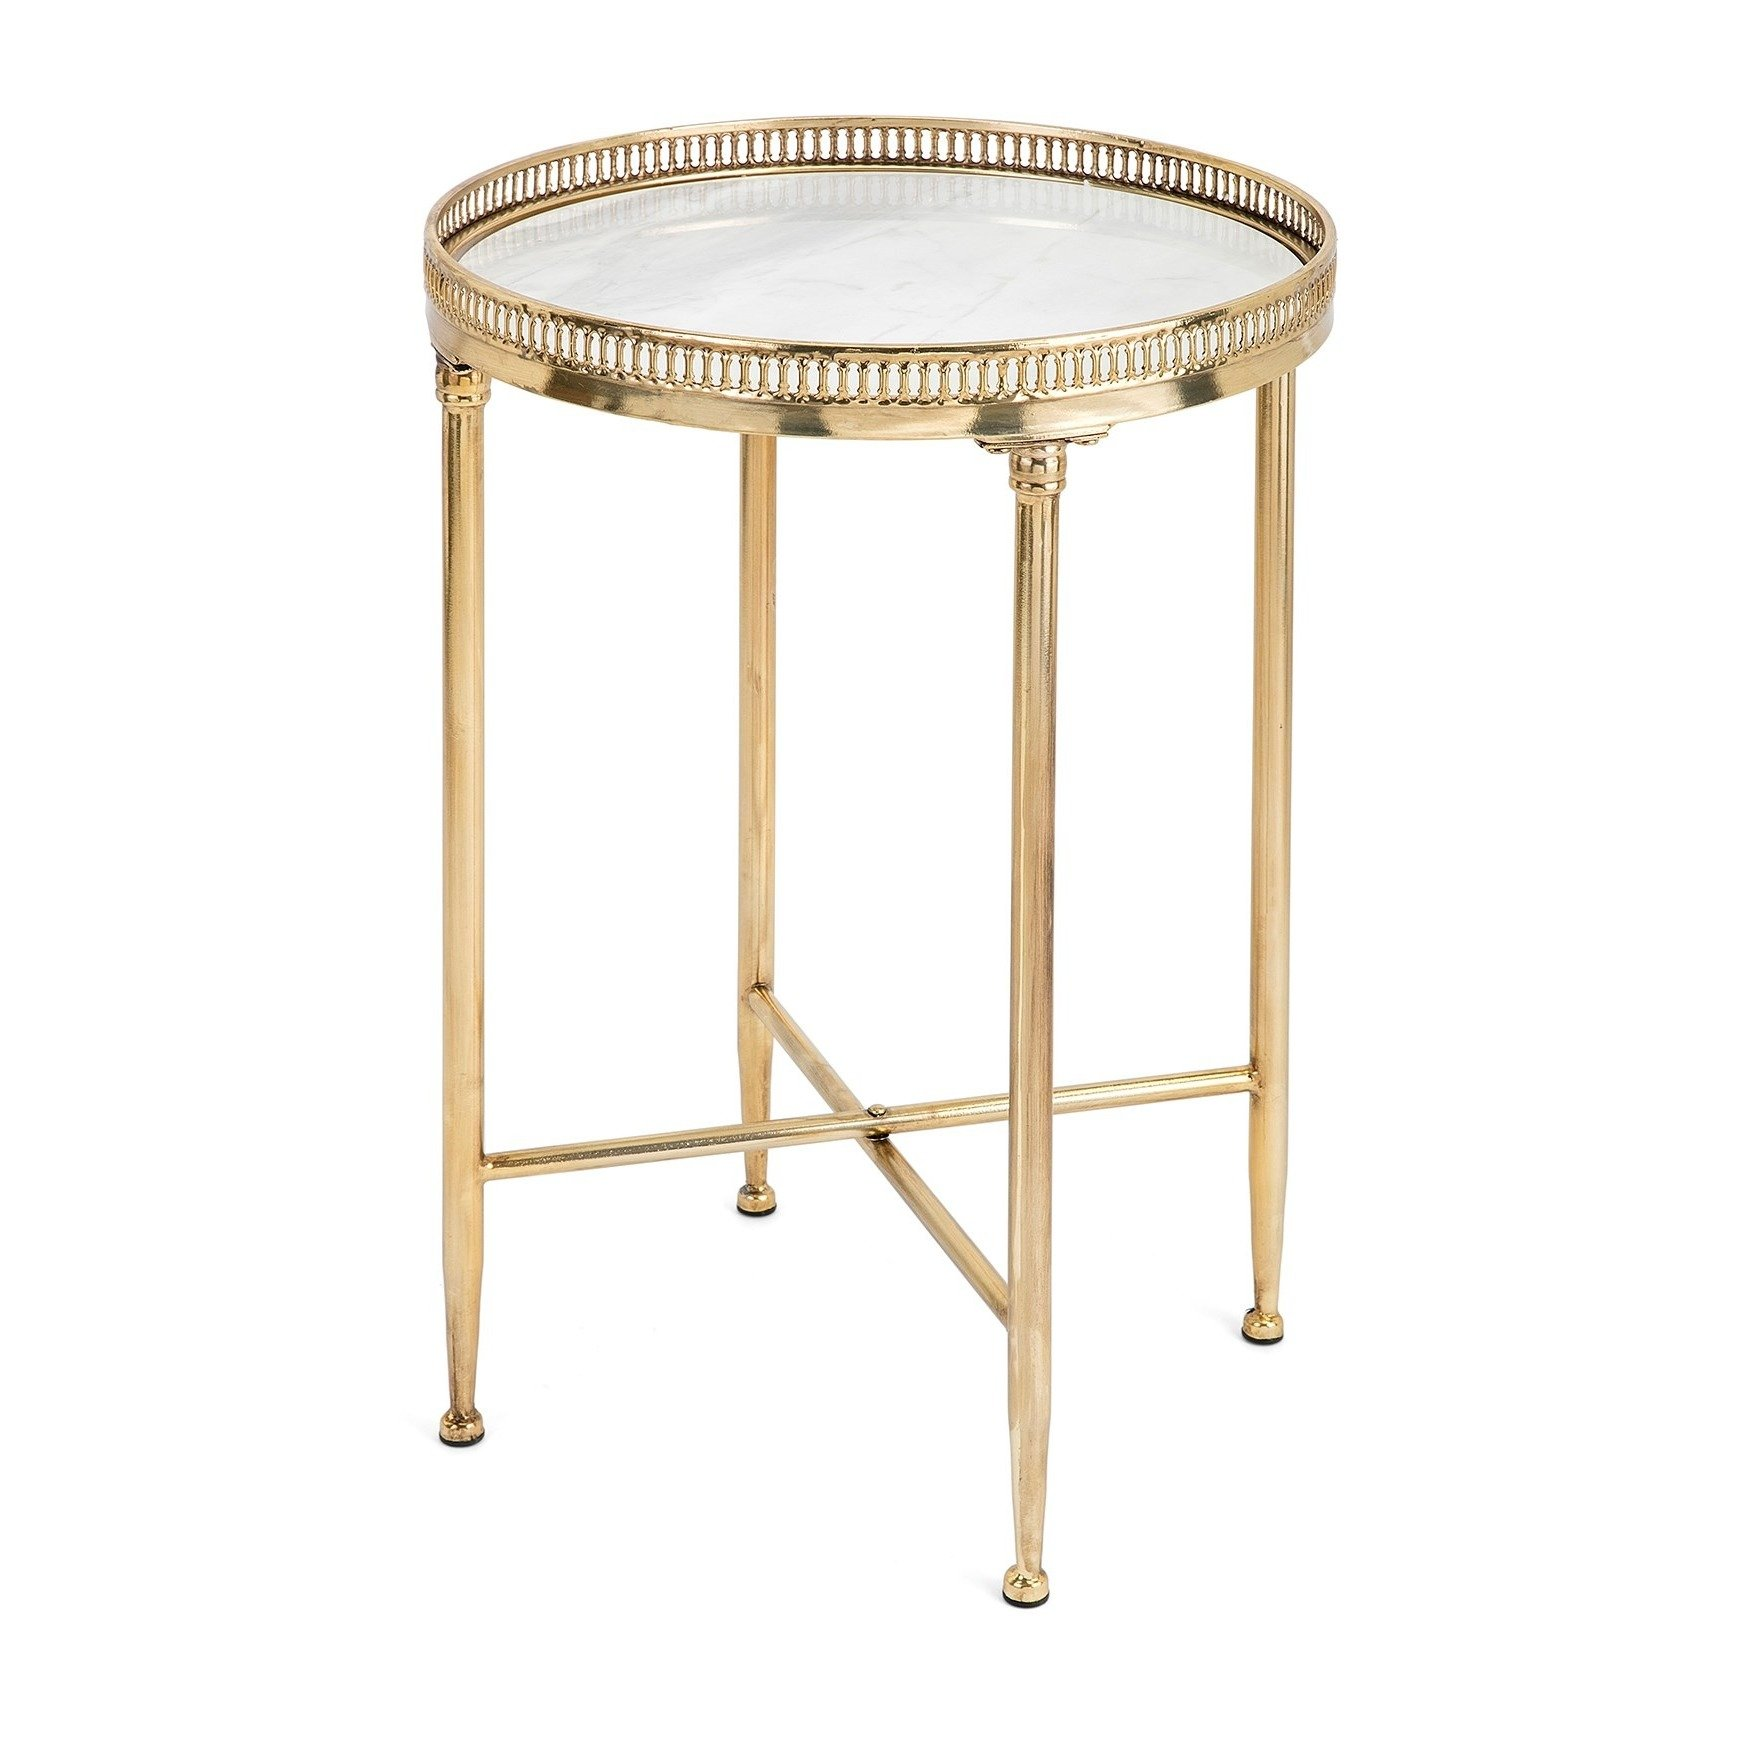 urban designs satin gold inch metal and marble top round accent table free shipping today candle centerpieces small oval end french coffee black piece living room set farm door